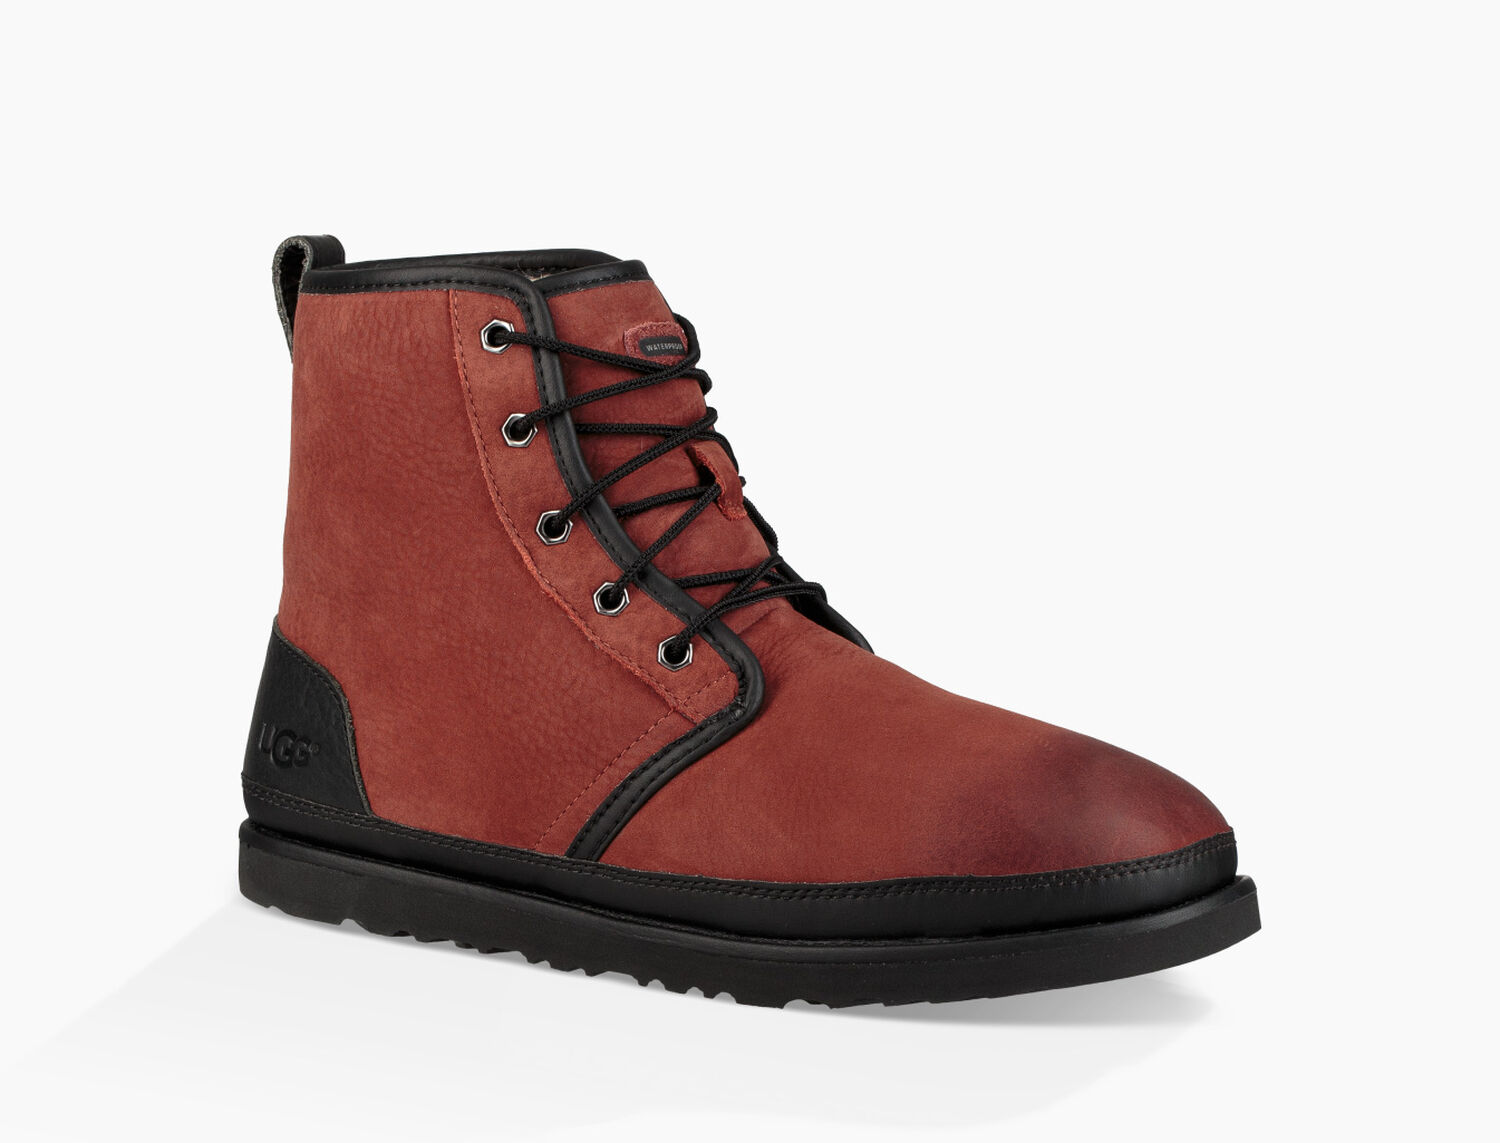 cb41a02b012 Men's Share this product Harkley Waterproof Boot